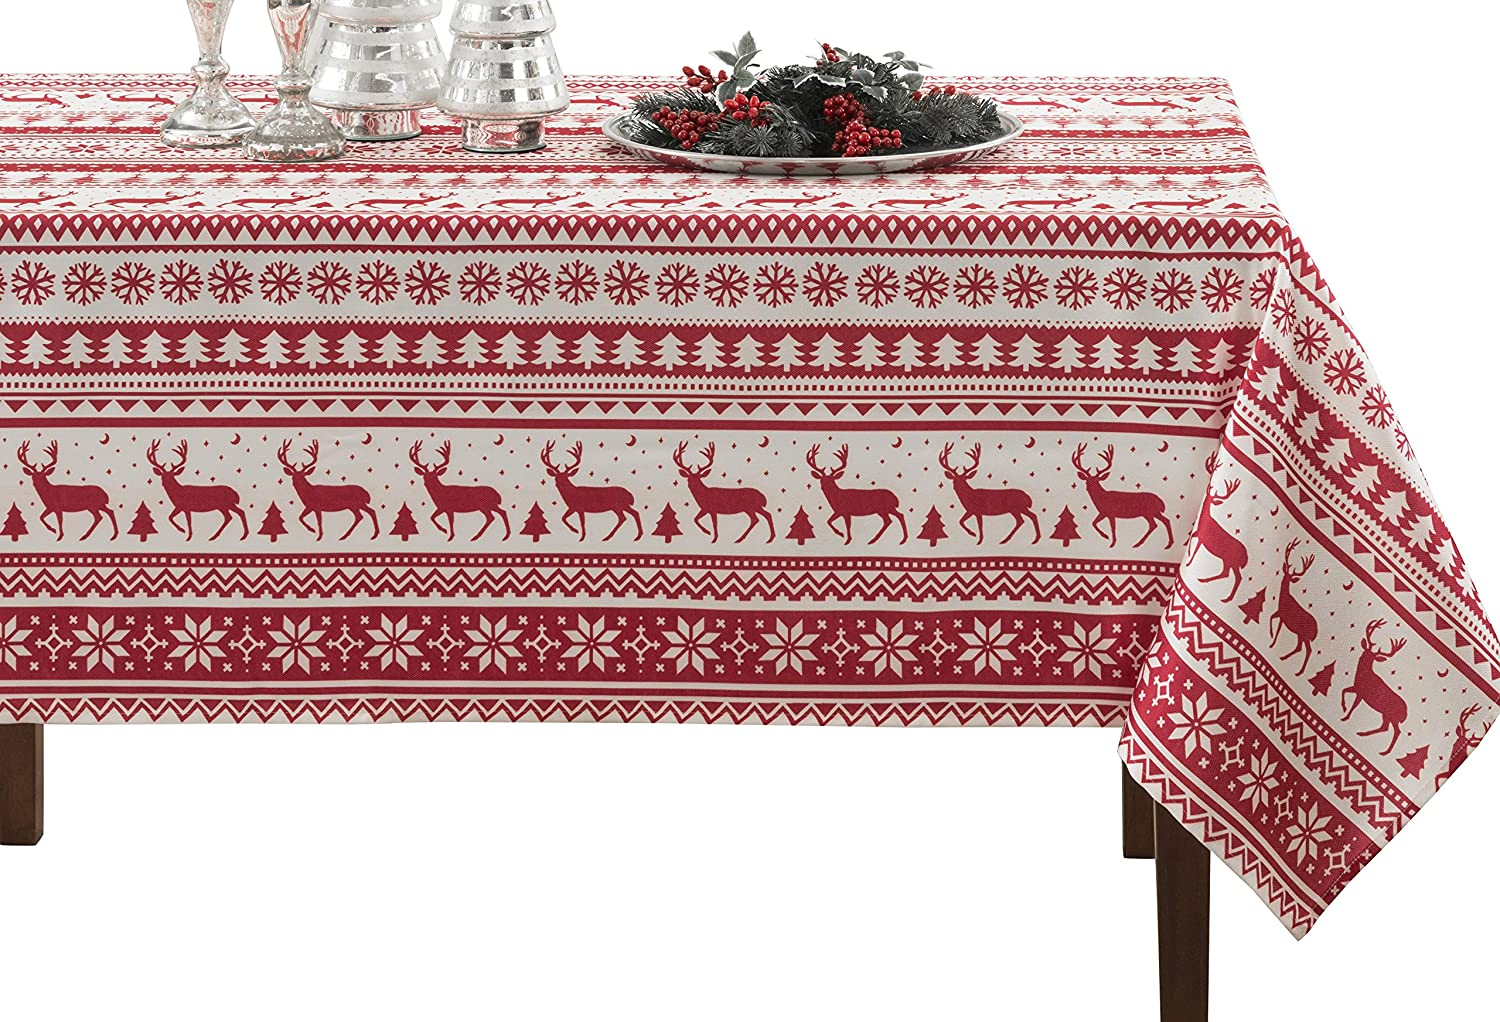 Christmas Tablecloth Cotton Fabric Christmas Heart Print 70 80 90 inches